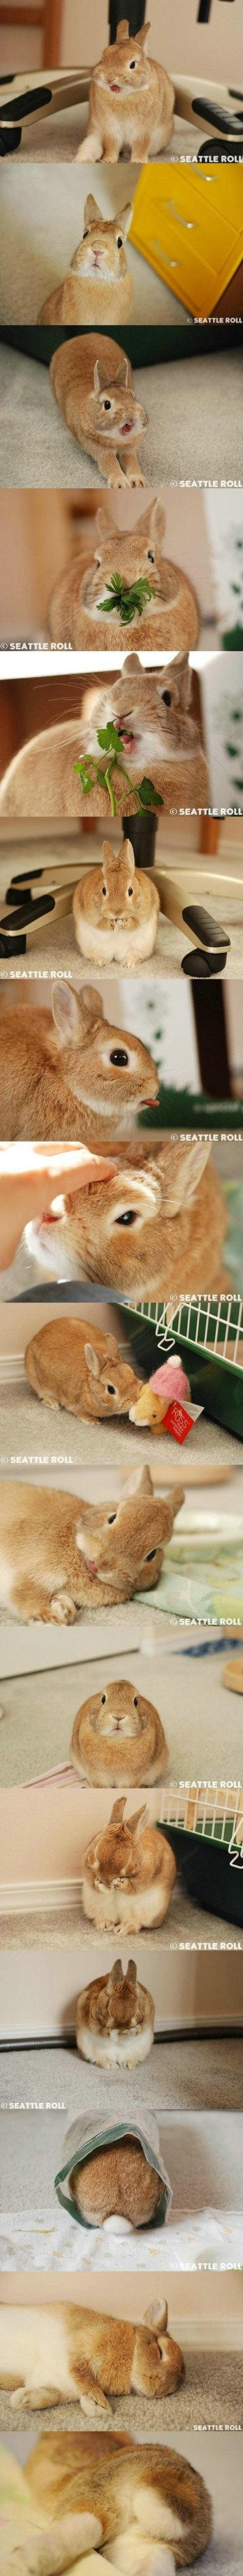 great pics of a bunny and all the cute things it does...